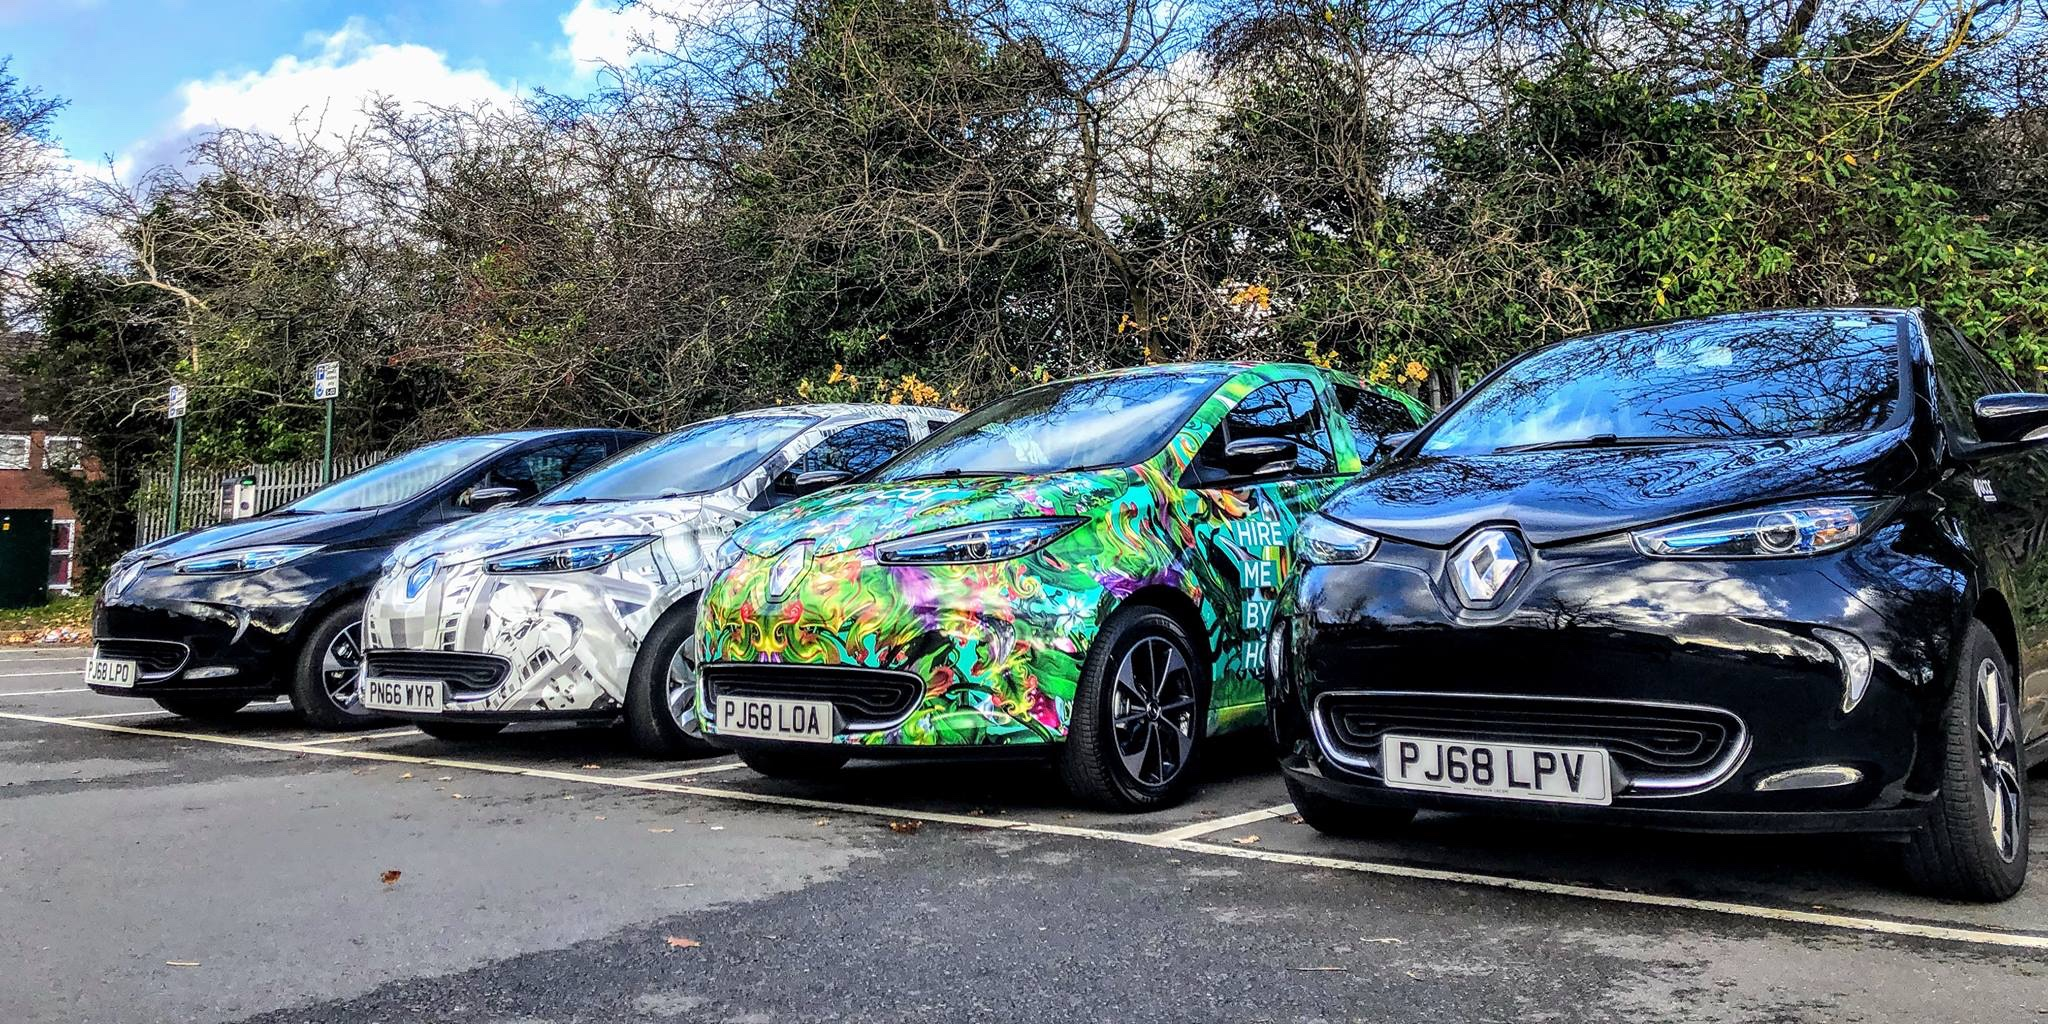 Vandals shut down UK electric car sharing program within months